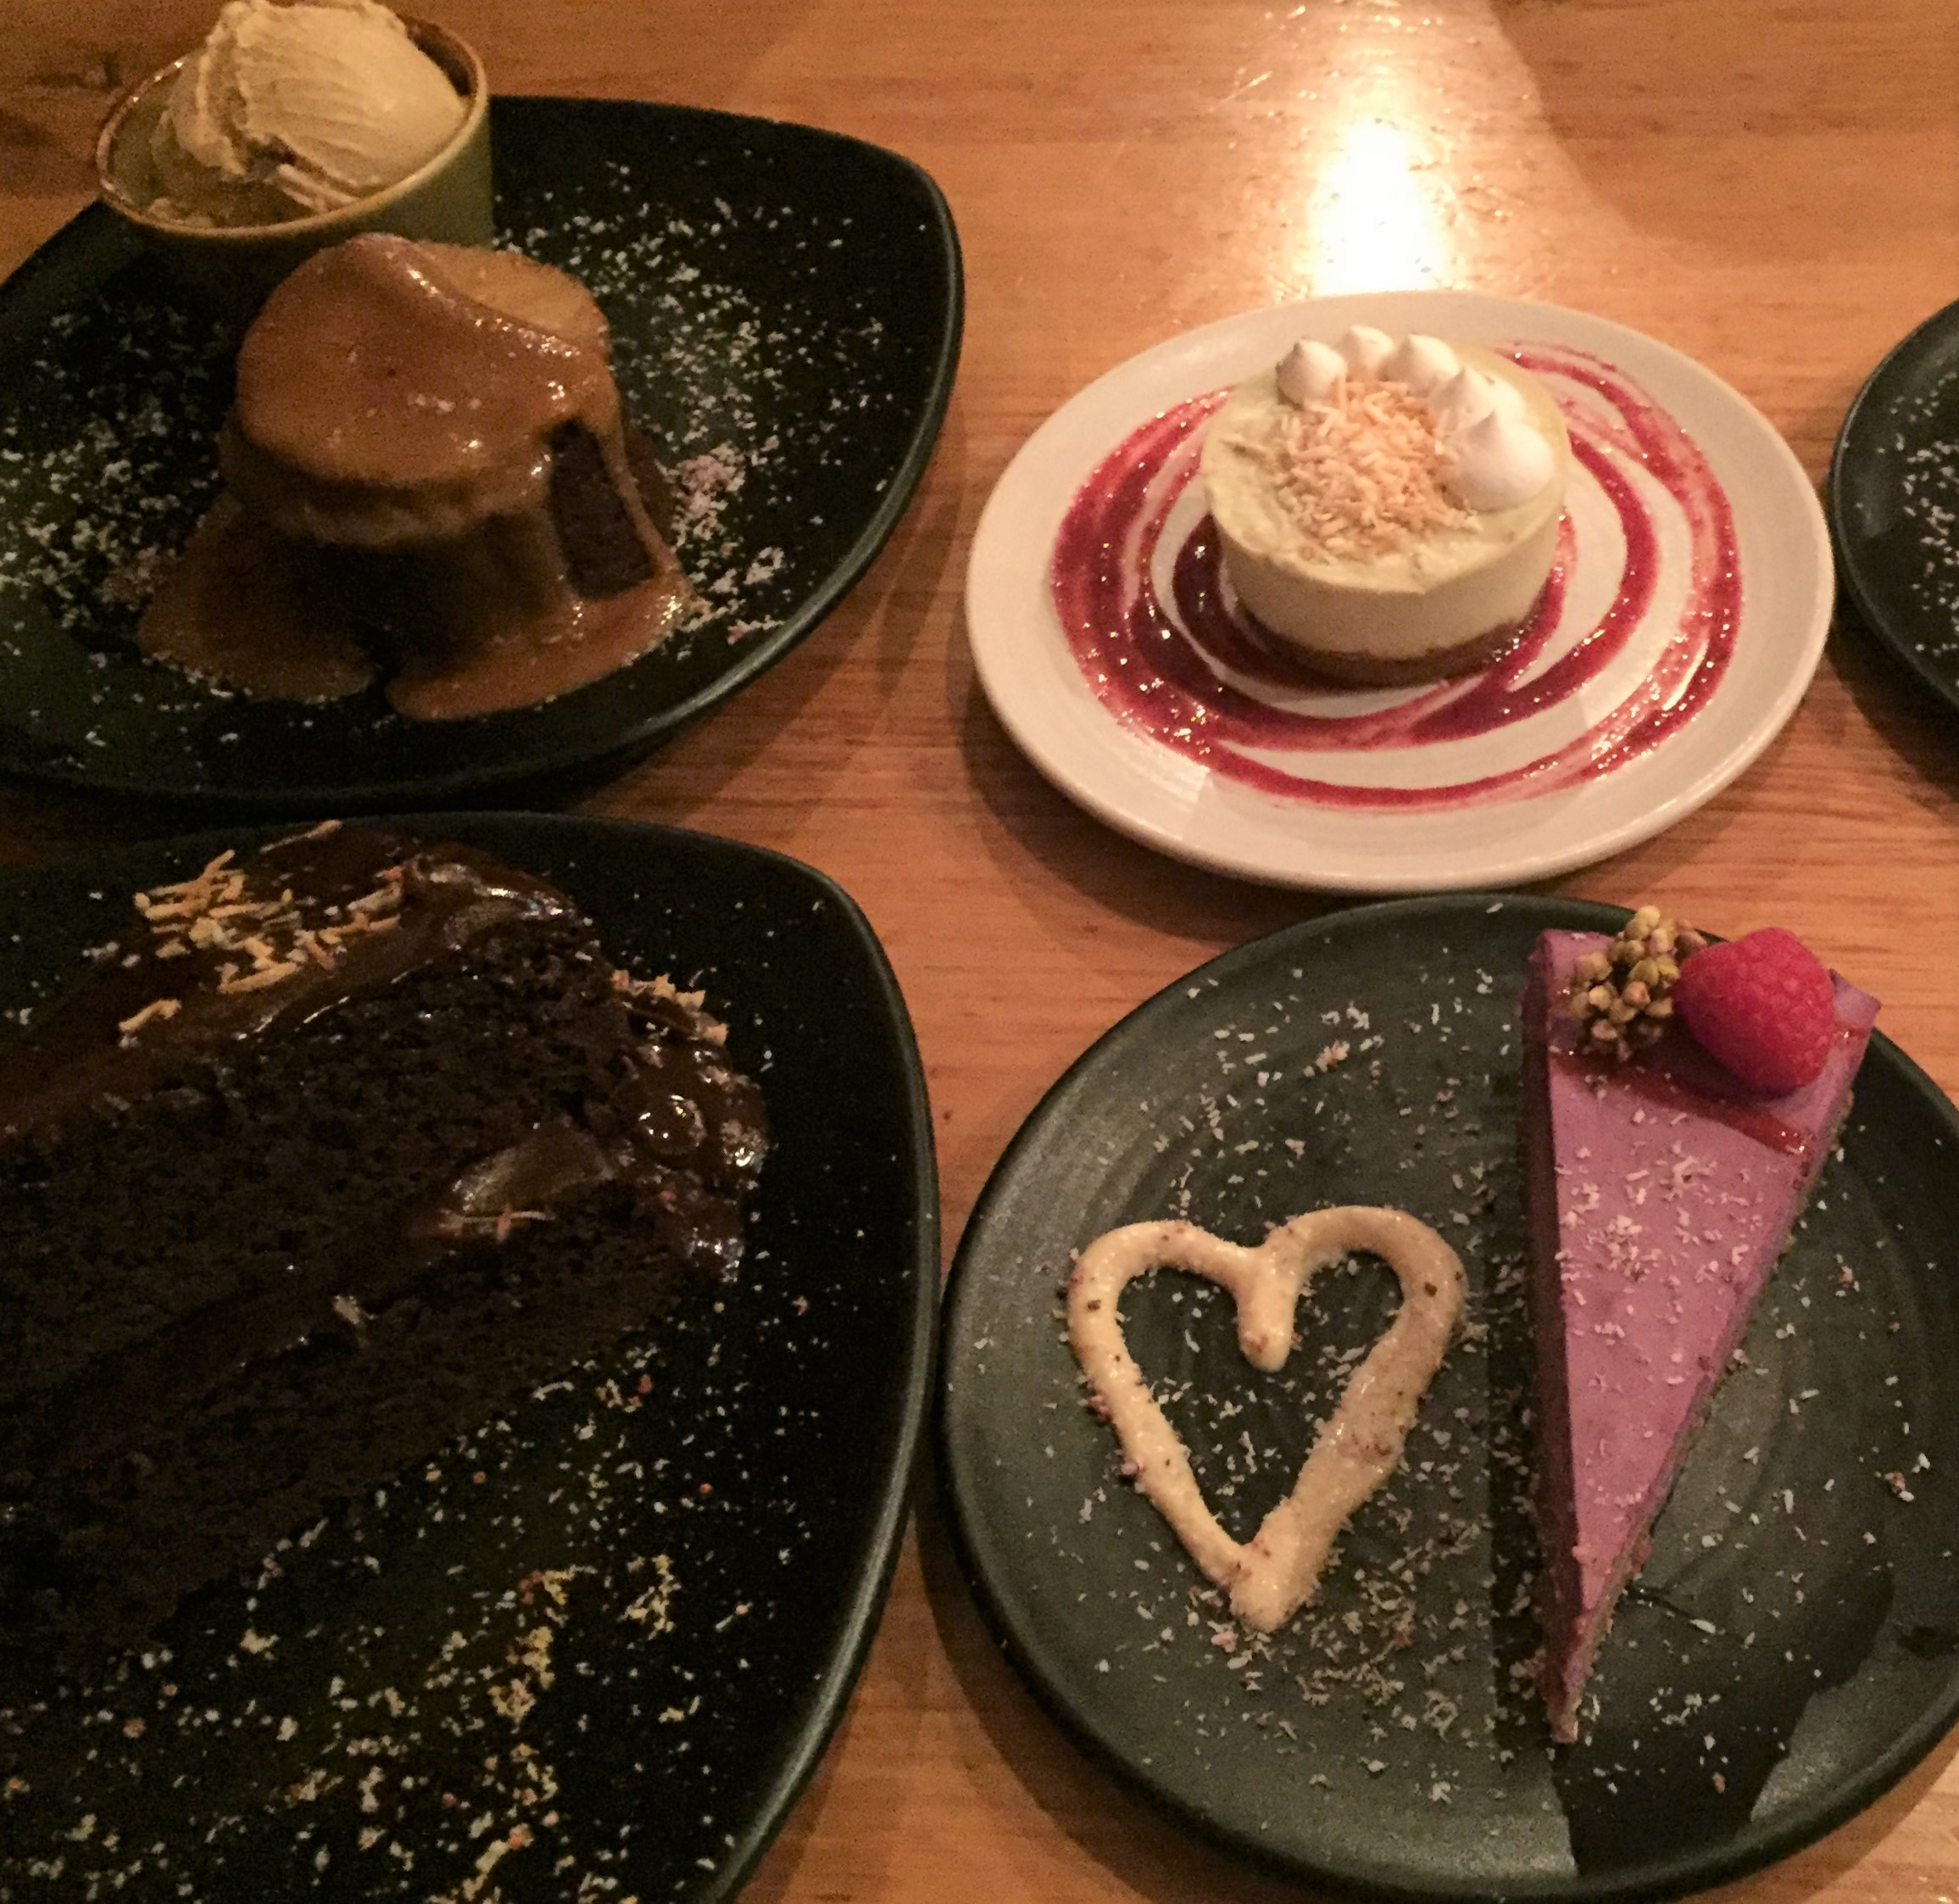 Amazing vegan desserts at Vegie Bar, Melbourne.